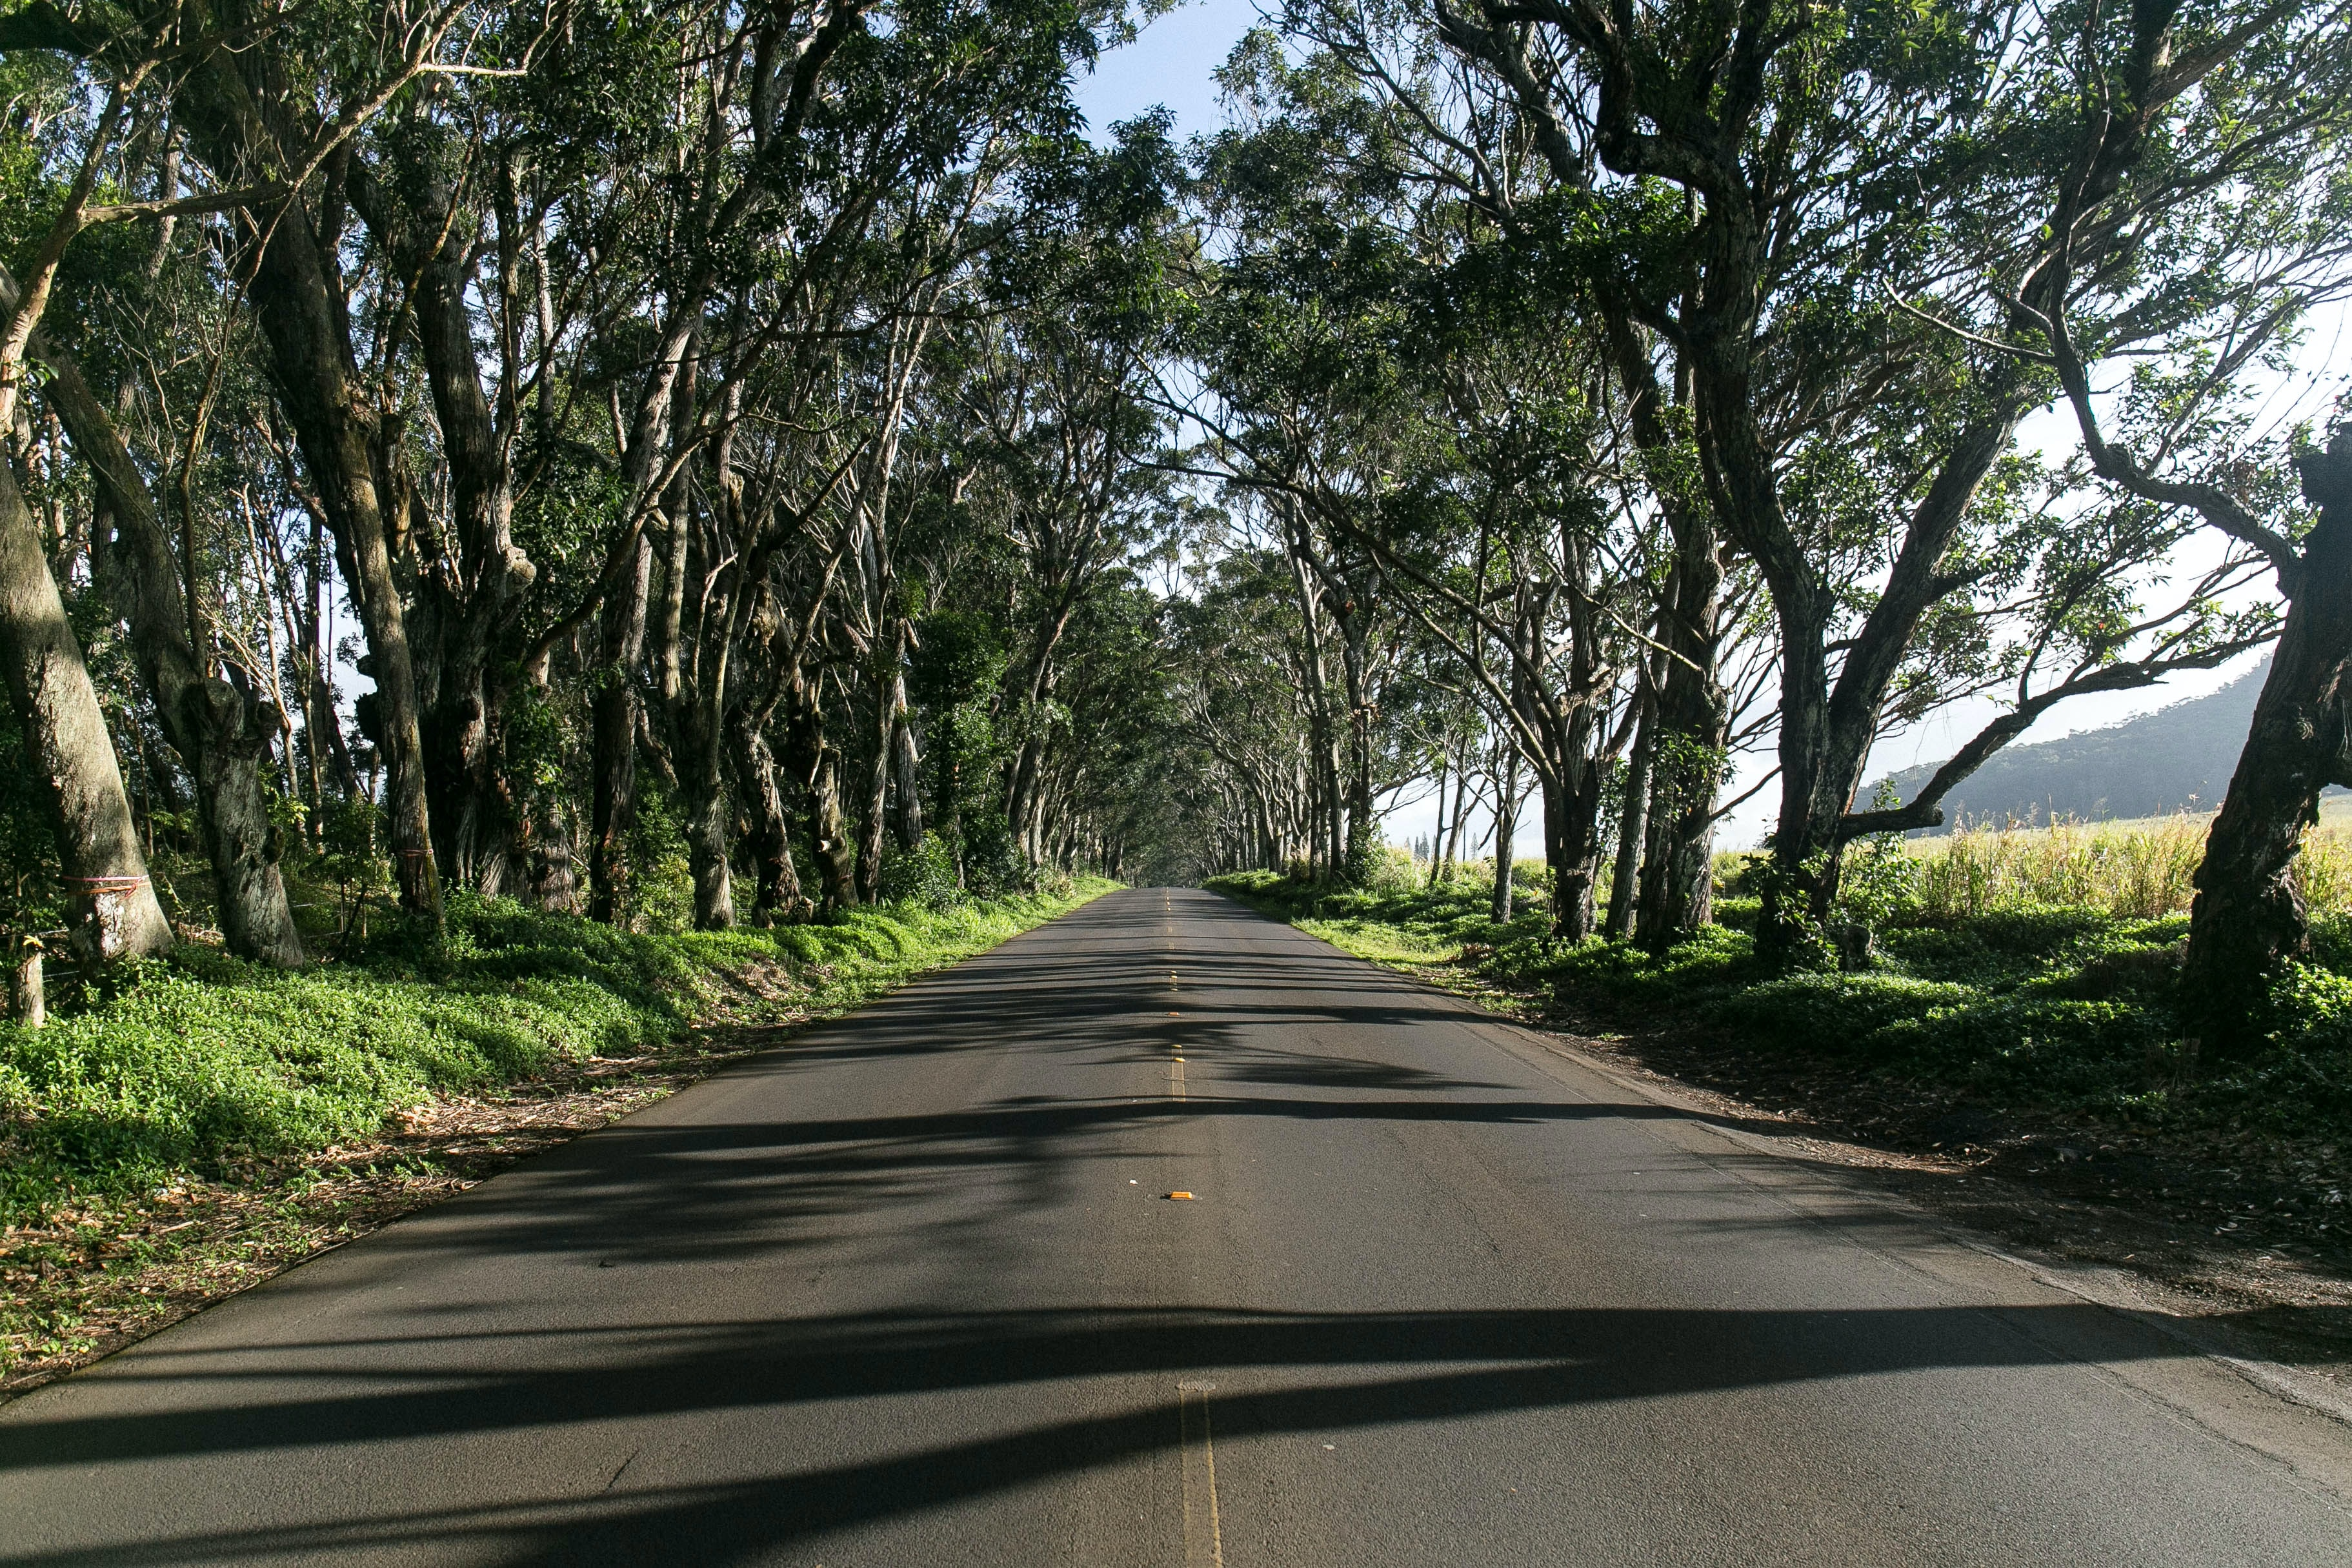 An empty road surrounded by rows of trees